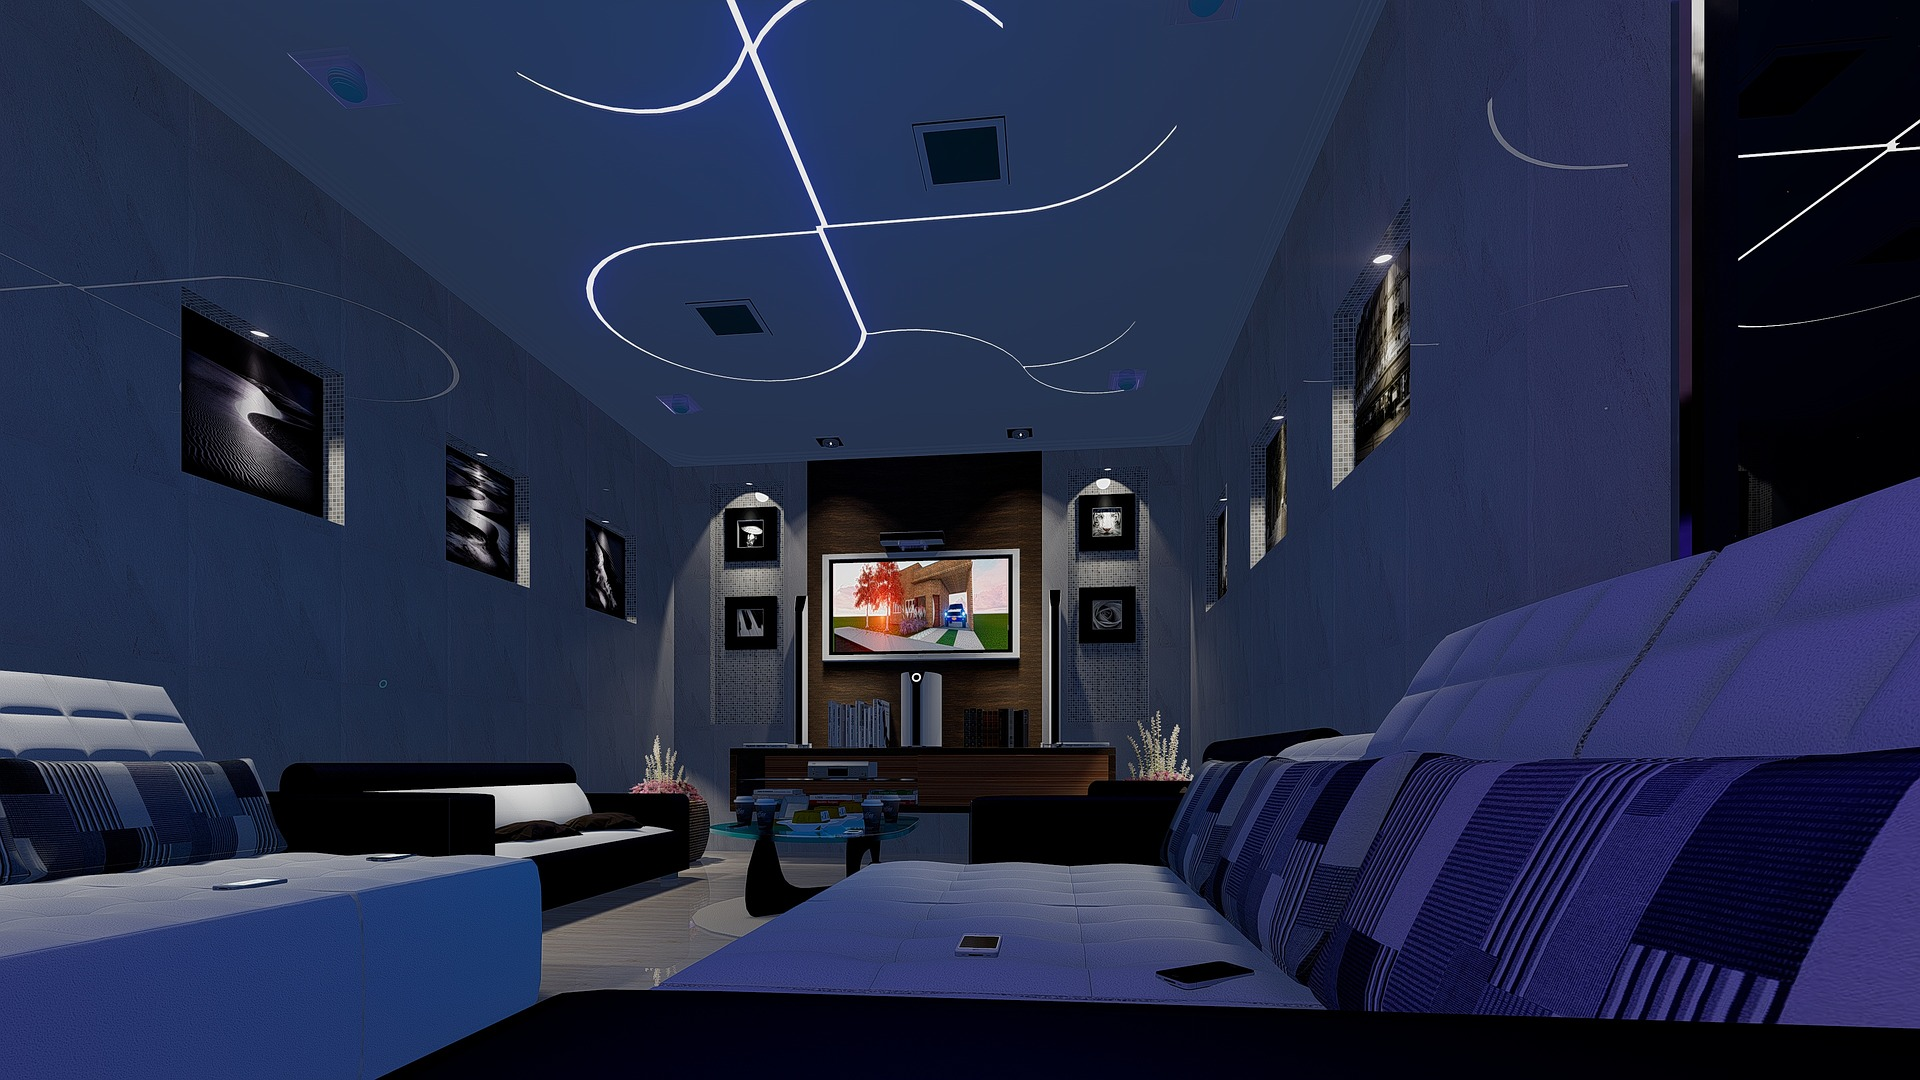 What To Look For When Hiring A LED Lighting Contractor